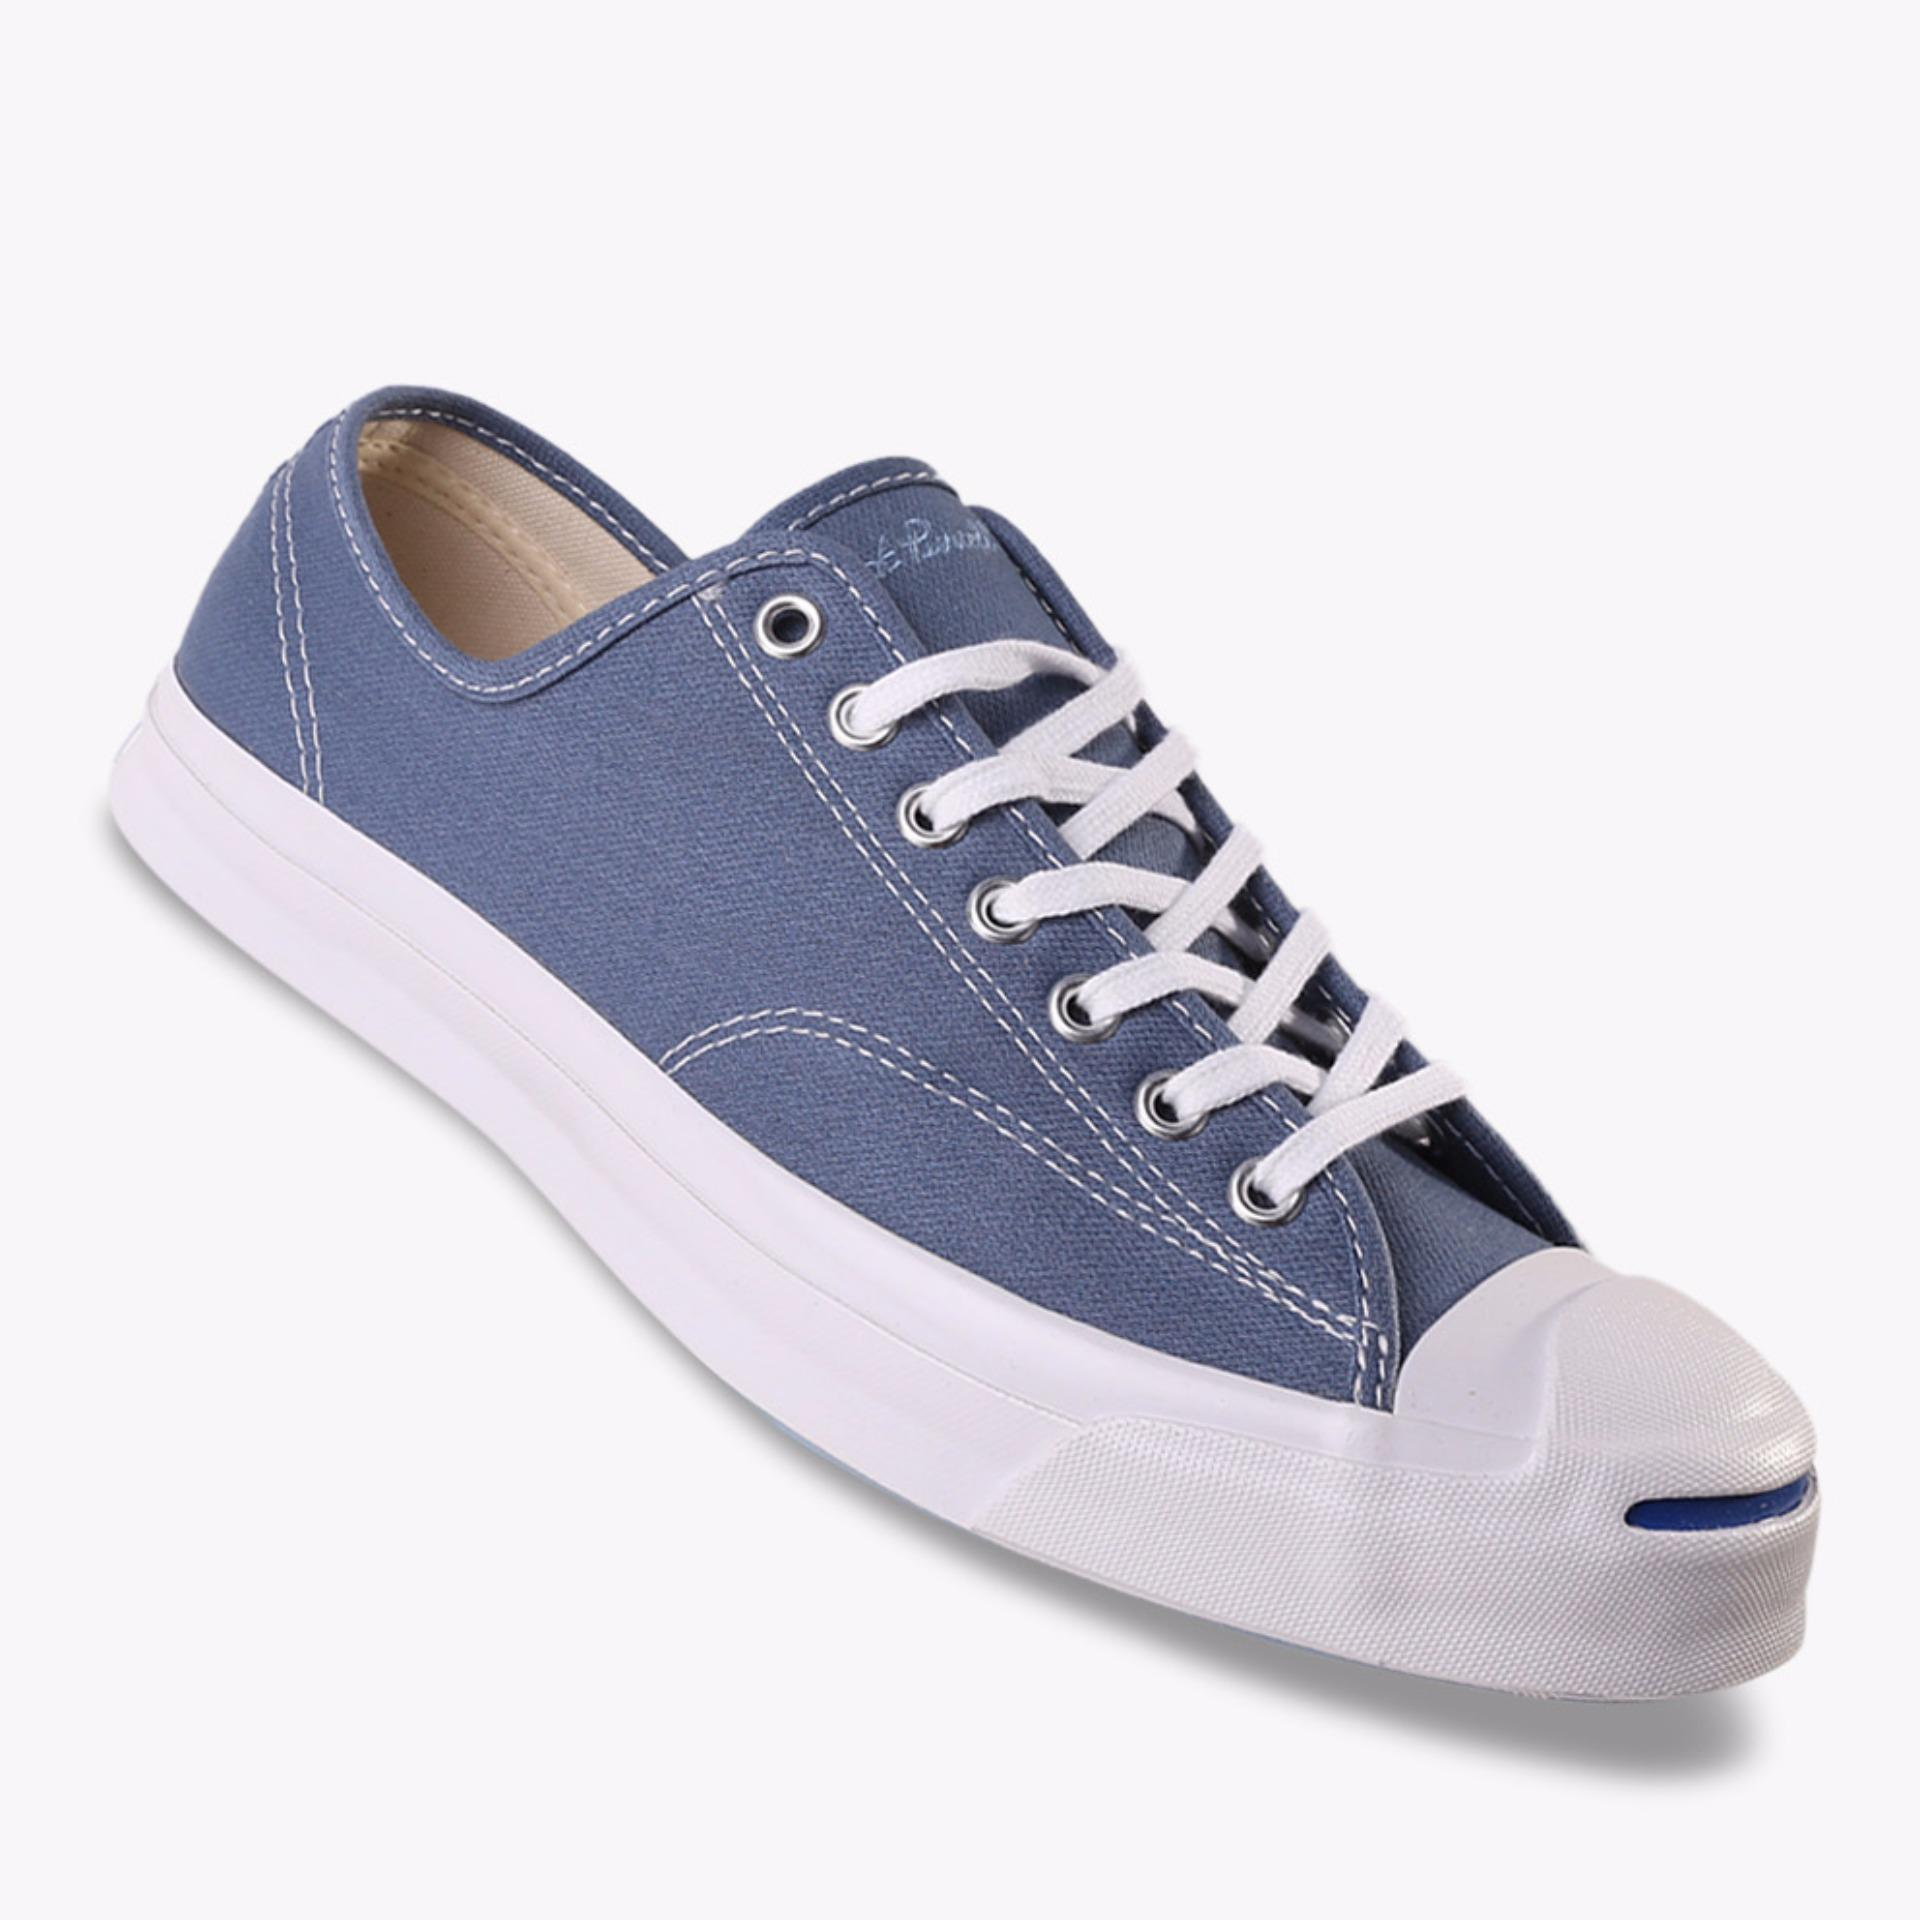 Review Converse Jack Purcell Signature Ox Men S Sneakers Shoes Biru Di Indonesia